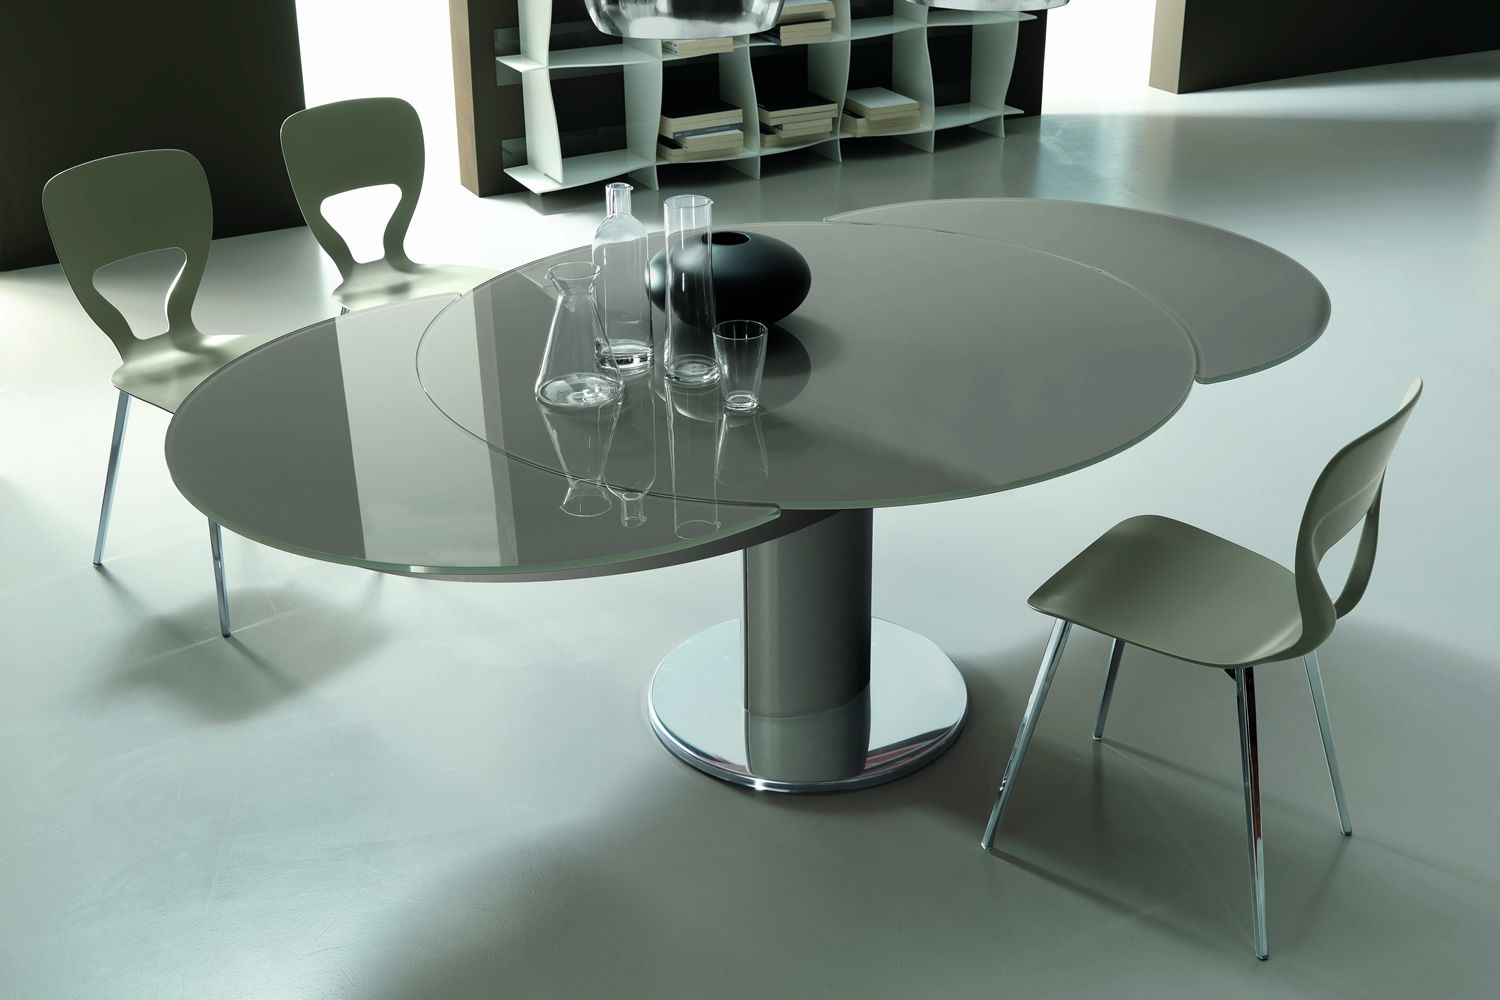 Giro Table Design Ronde De Bontempi Casa Extensible